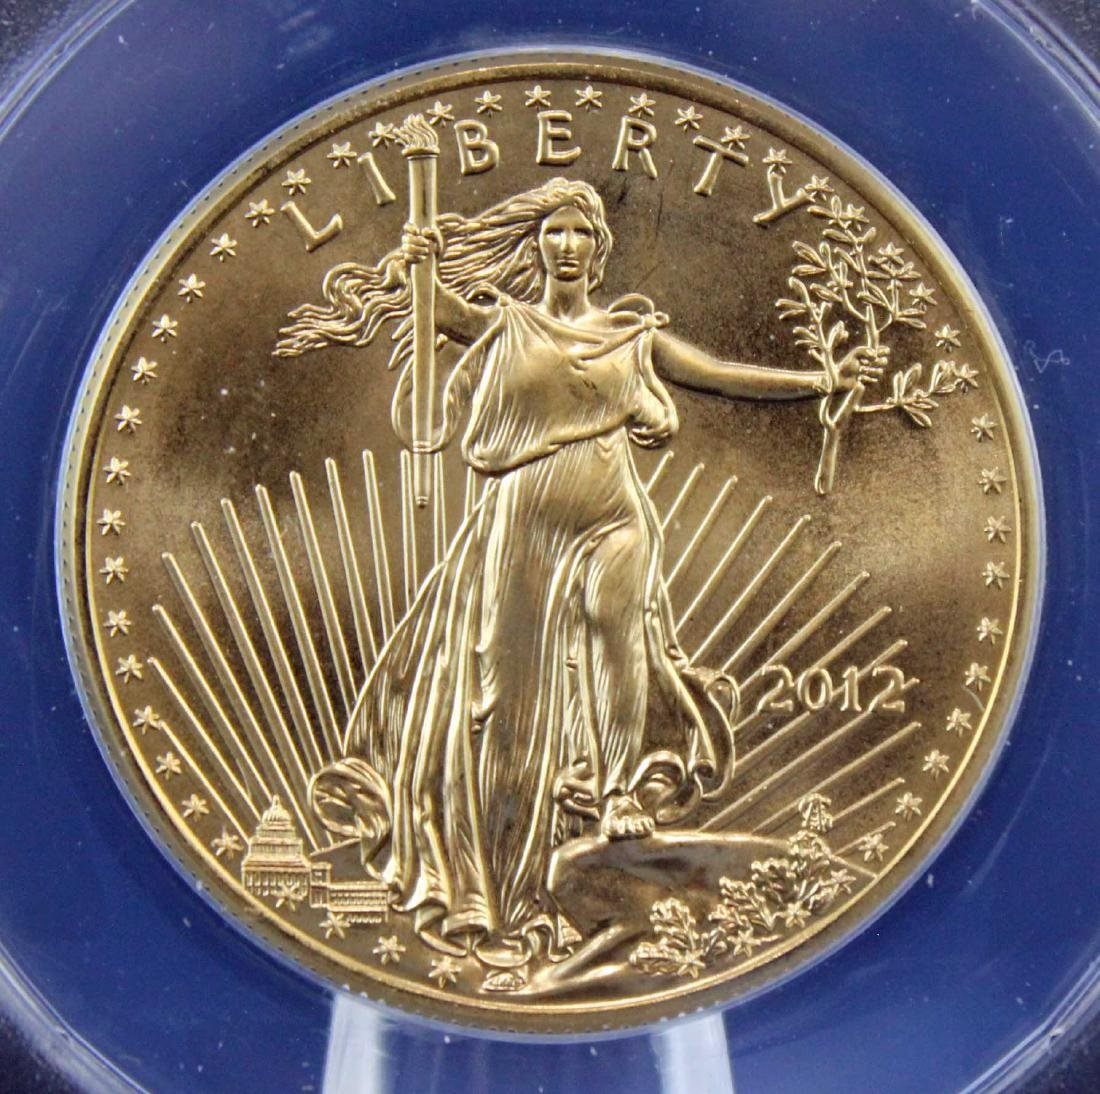 2012 Gold Eagle $50 Coin 1 Troy Oz.  ANACS MS 68 - 2